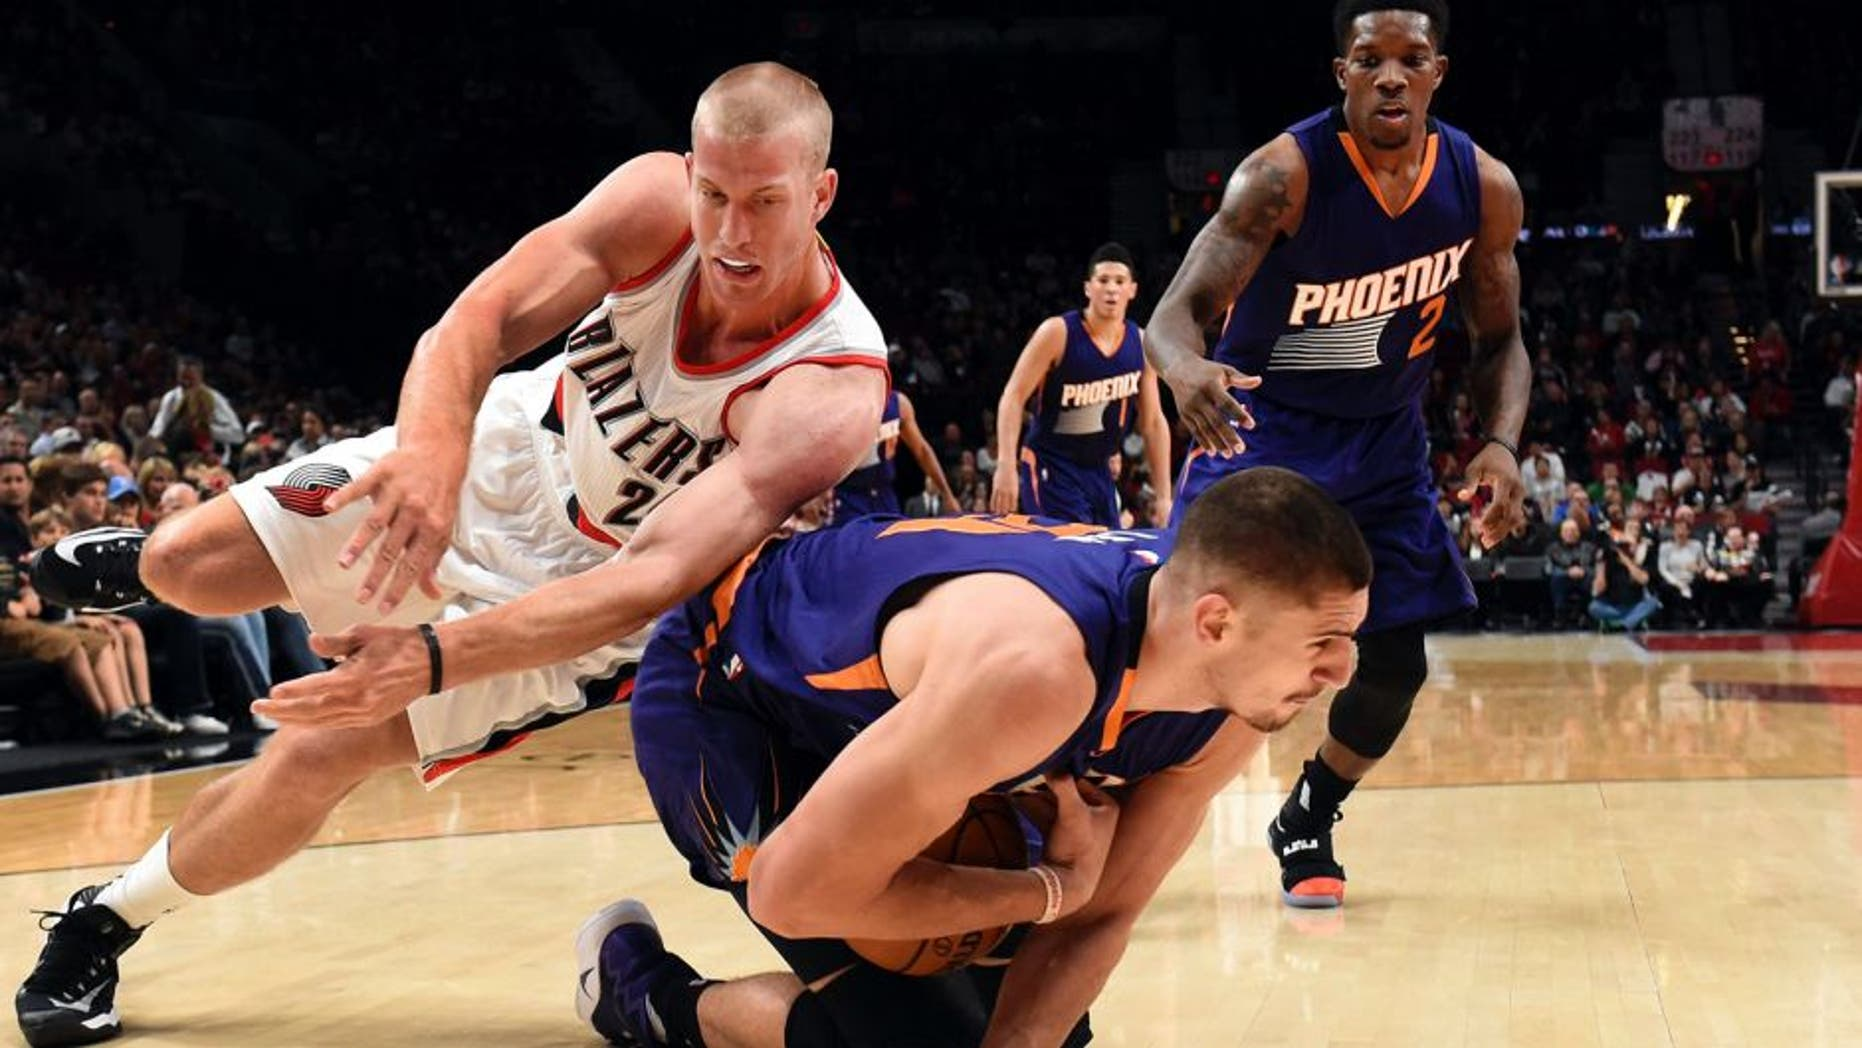 Portland Trail Blazers forward Mason Plumlee dives for the ball with Phoenix Suns center Alex Len during the first quarter of an NBA basketball preseason game in Portland, Ore., Friday, Oct. 7, 2016. (AP Photo/Steve Dykes)